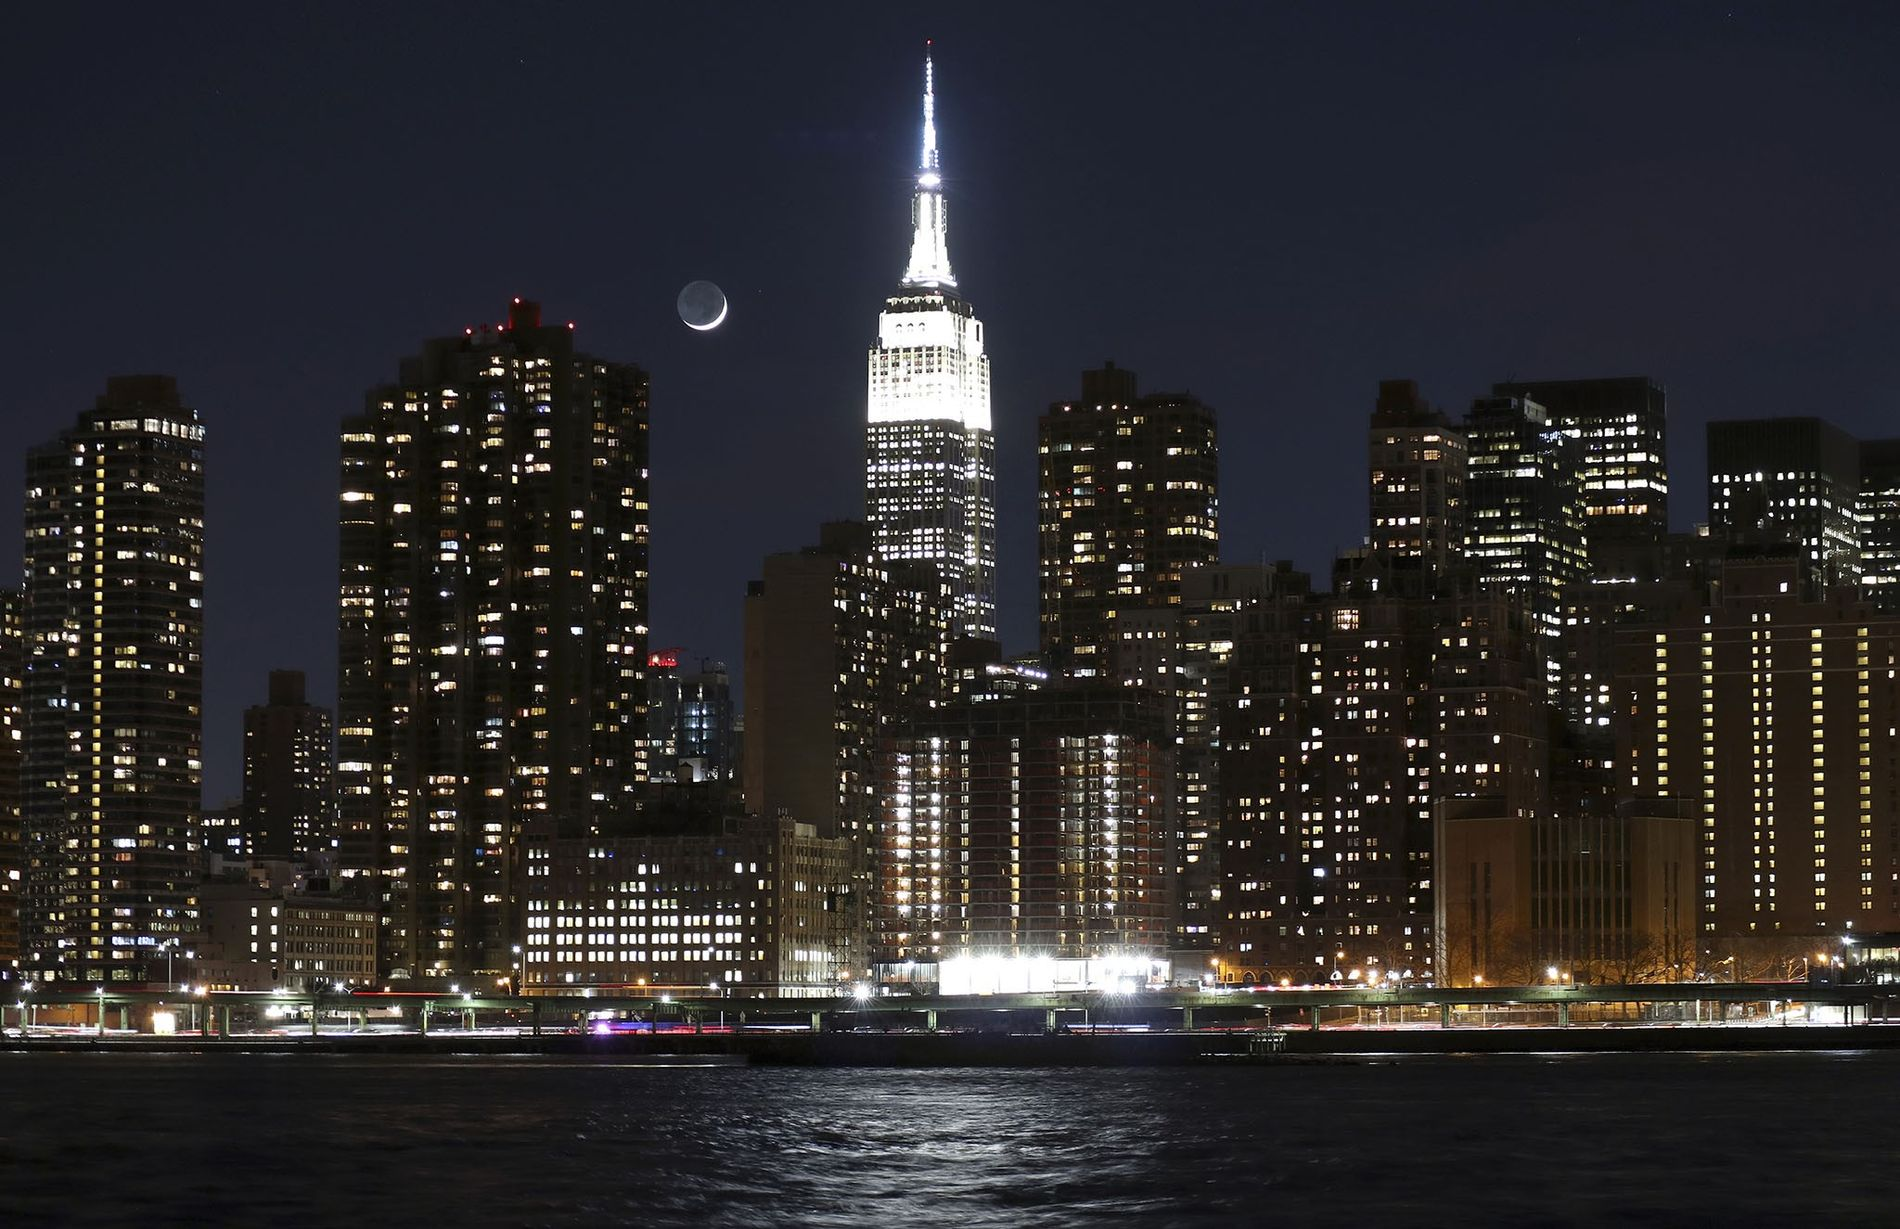 The Empire State Building's facelift included its signature lights, now LEDs with millions of color combinations ...